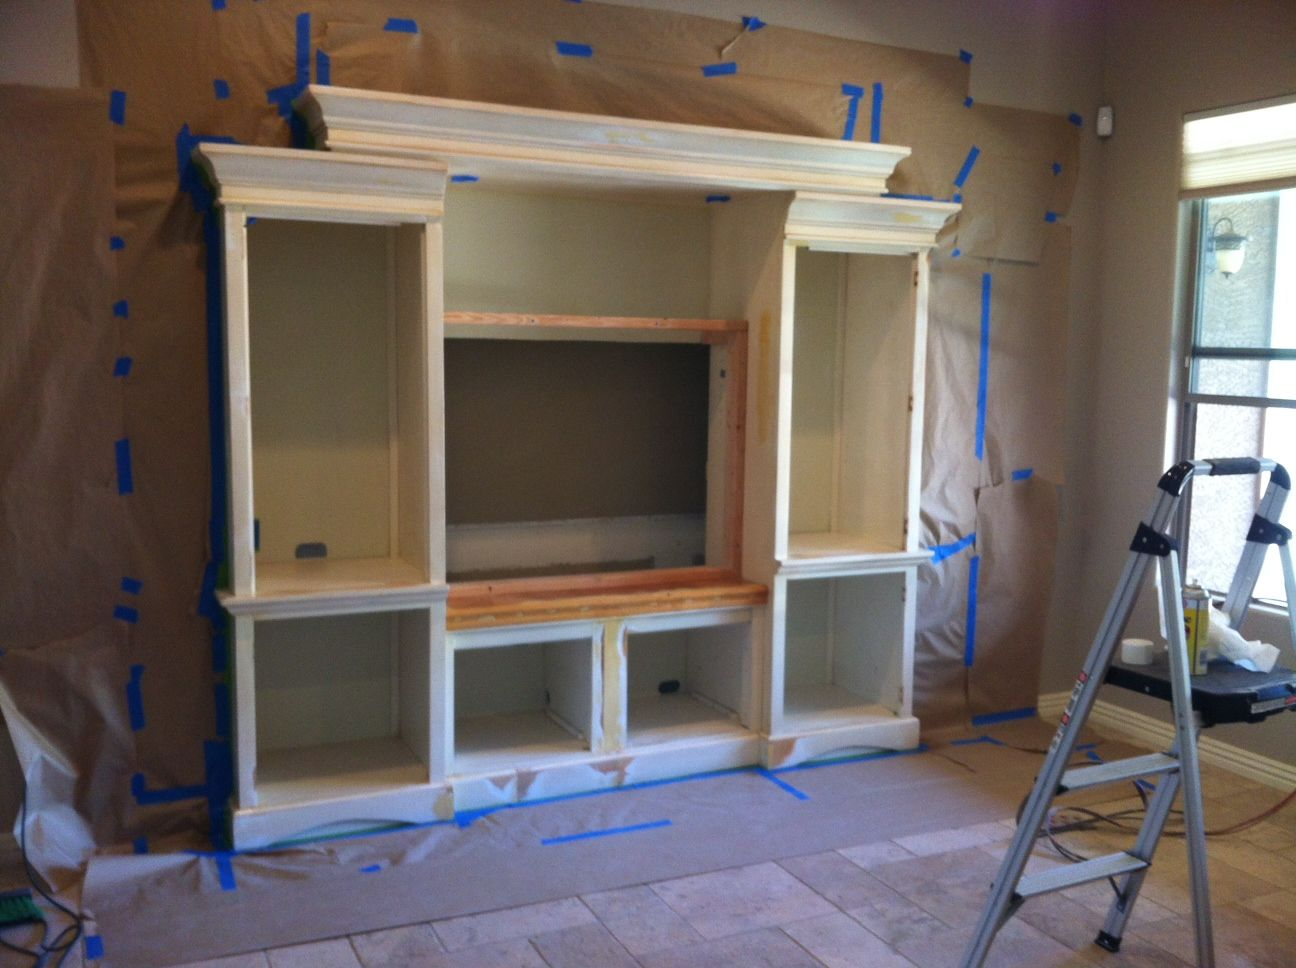 Adding a custom entertainment center to a standard drywall How to build an entertainment wall unit